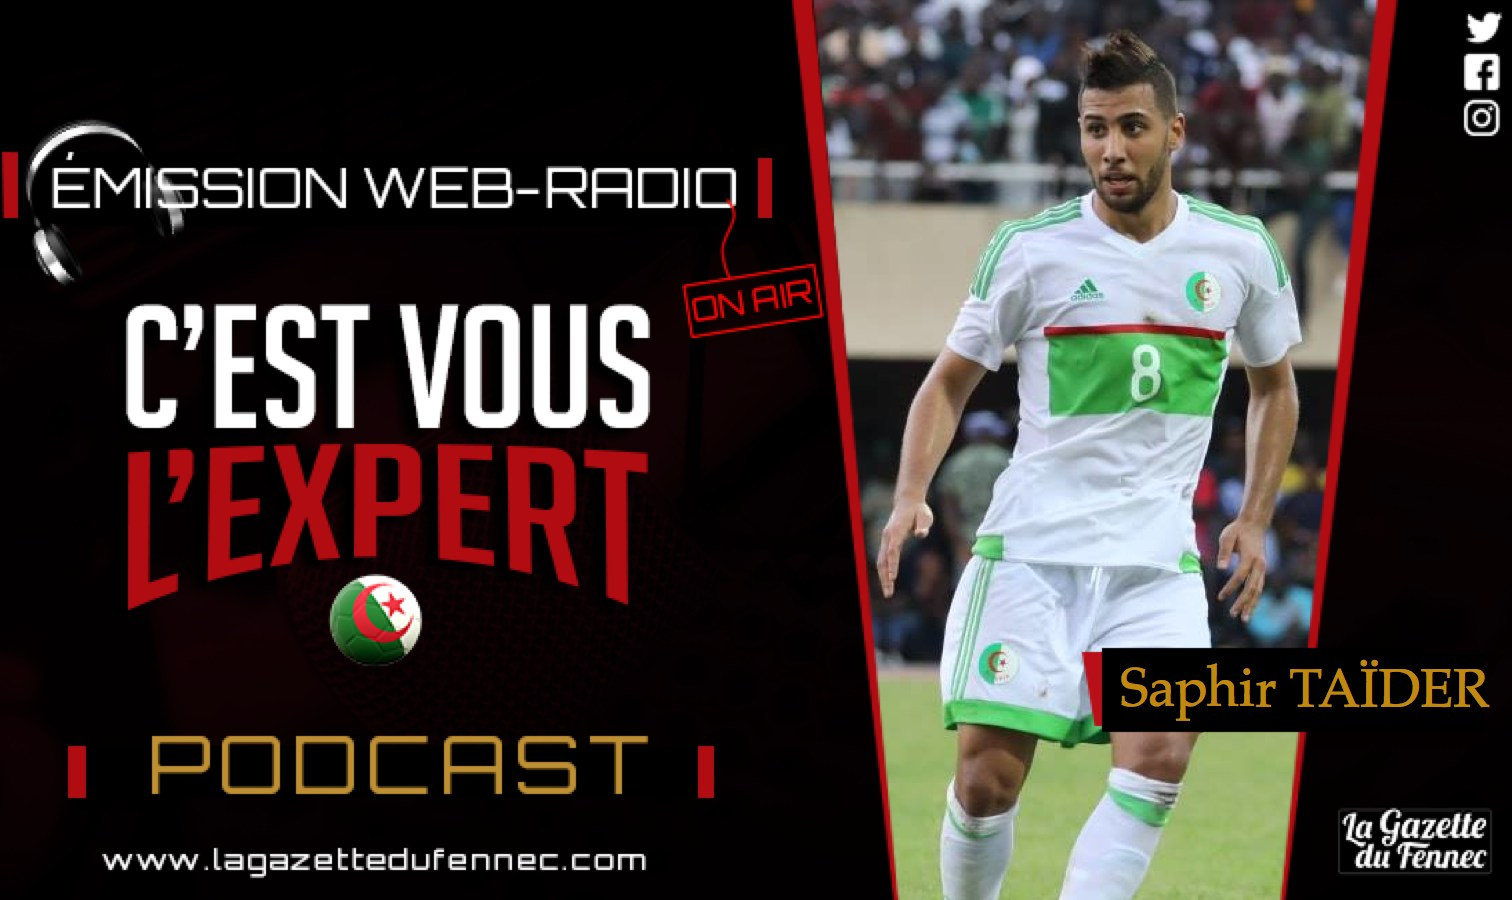 podcast taider s